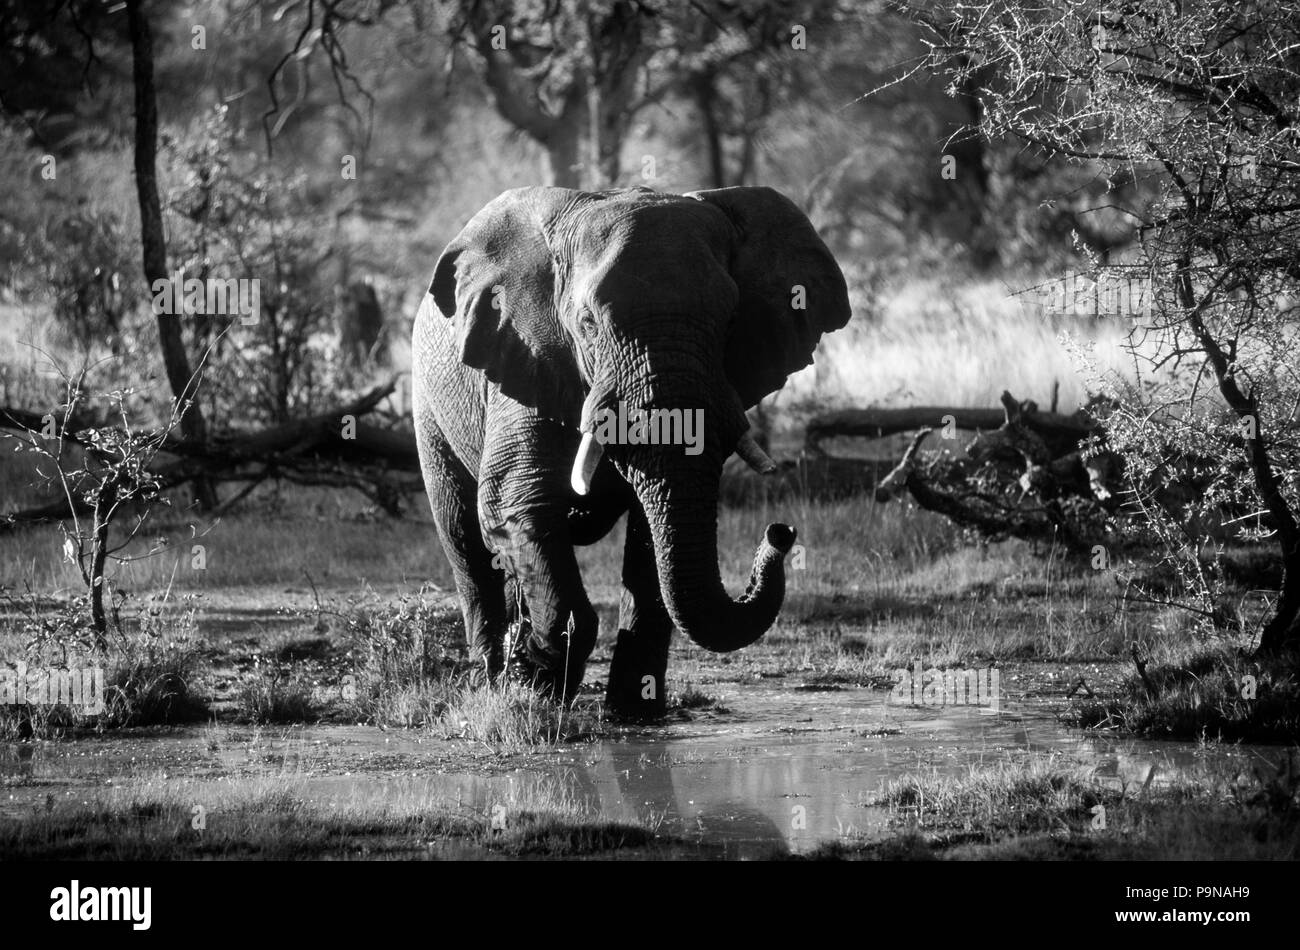 An AFRICAN ELEPHANT (Loxodanta Africana) walking across the OKAVANGO DELTA - BOTSWANA - Stock Image